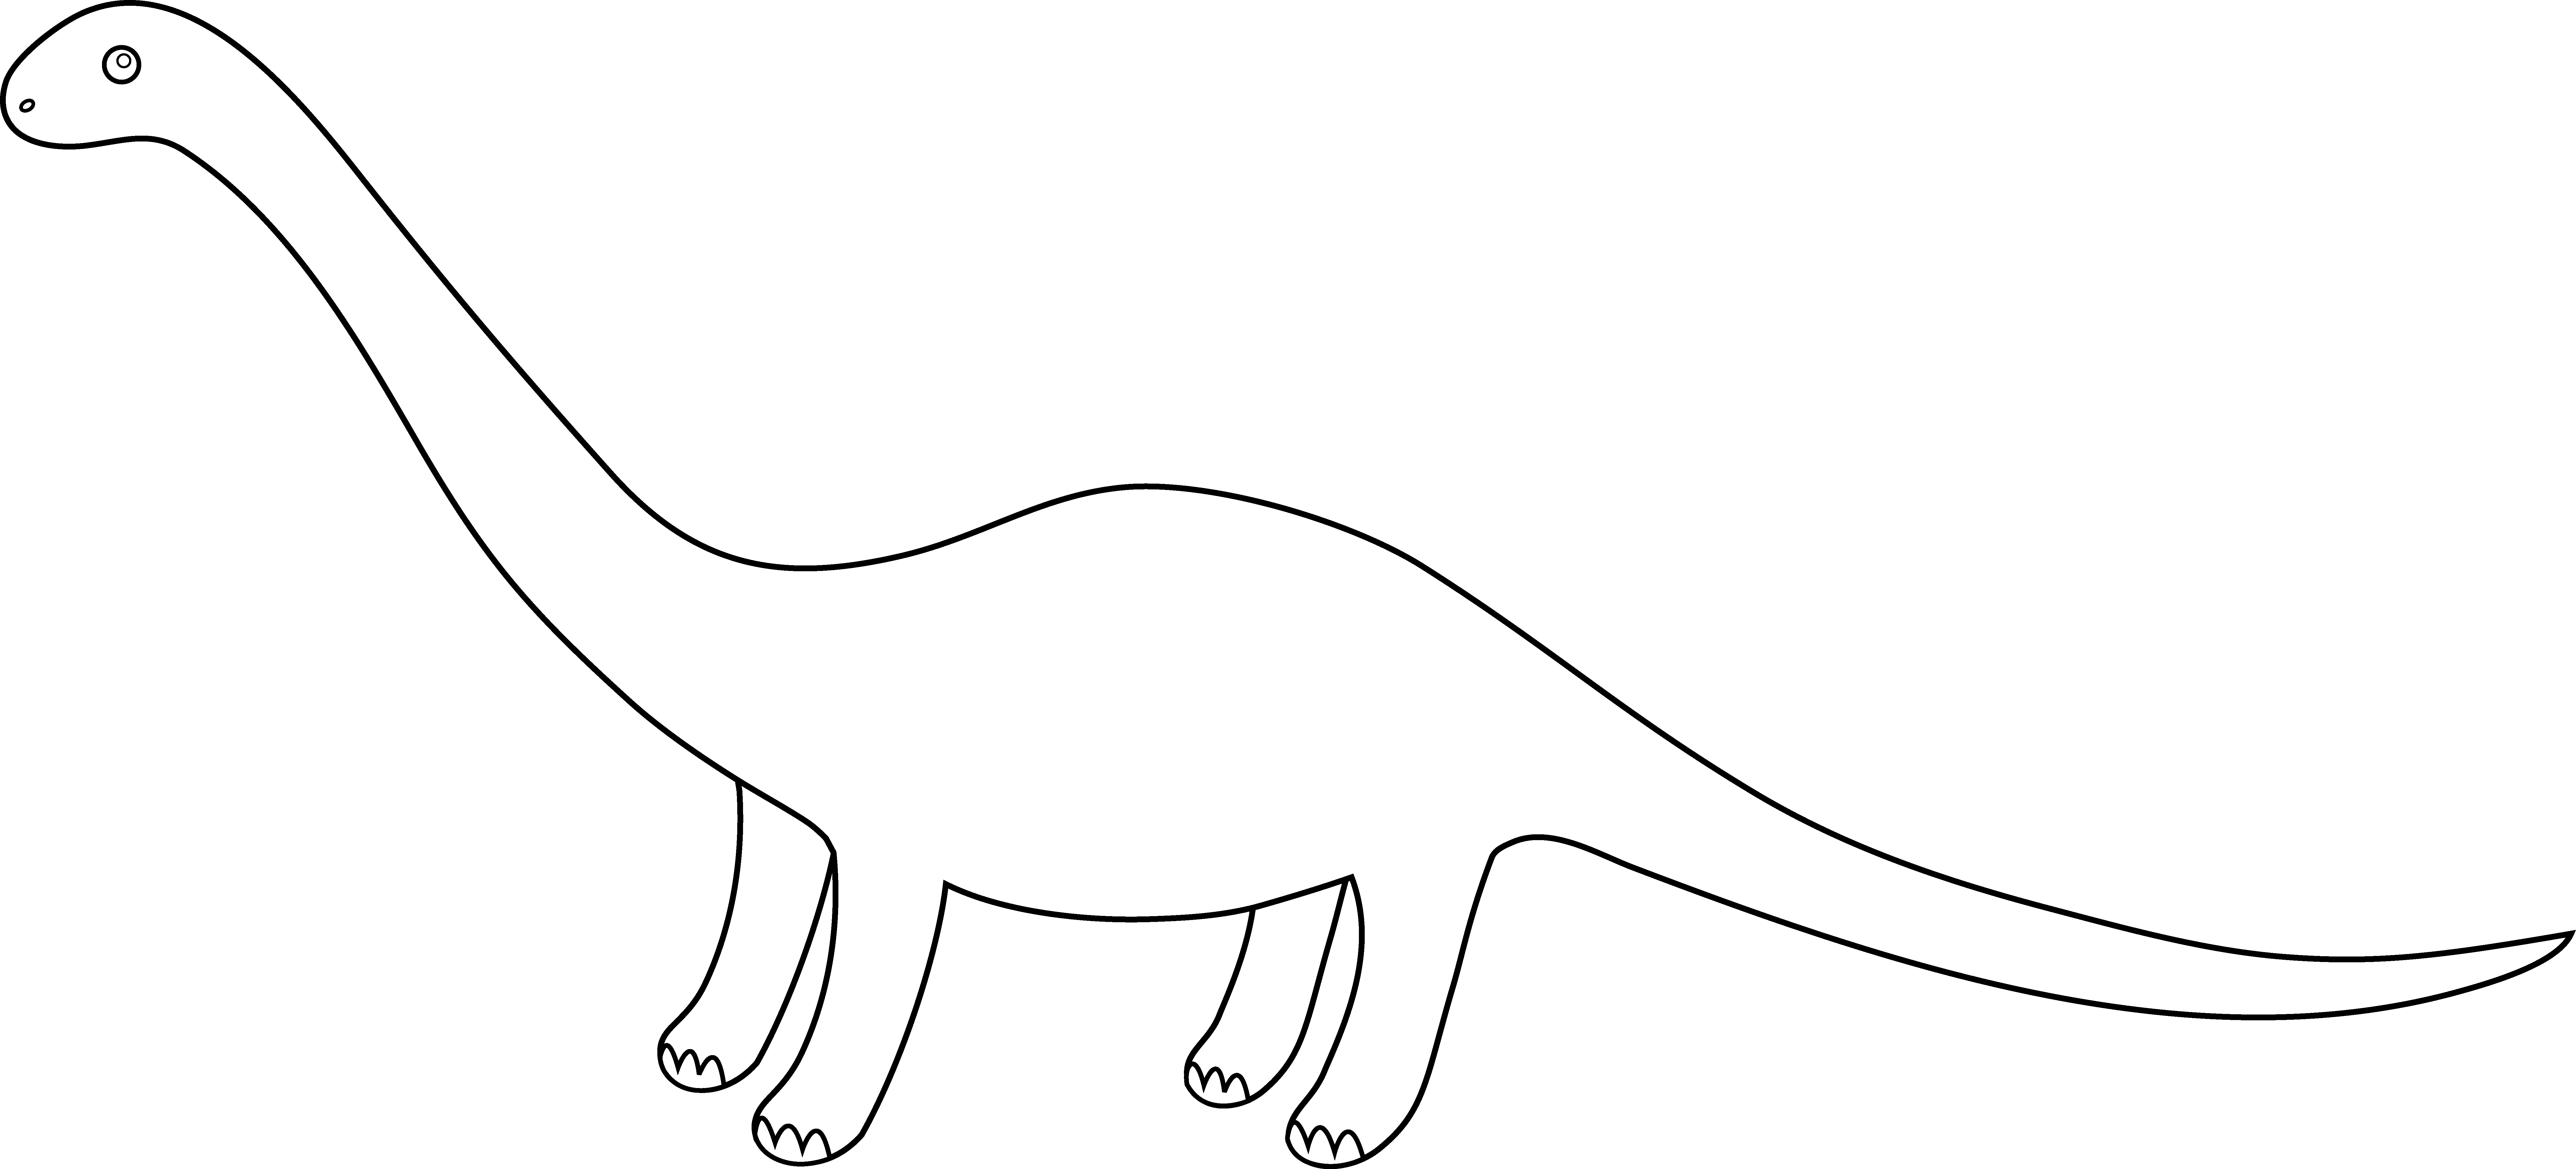 Line Drawing Dinosaur : Dinosaur outlines cliparts